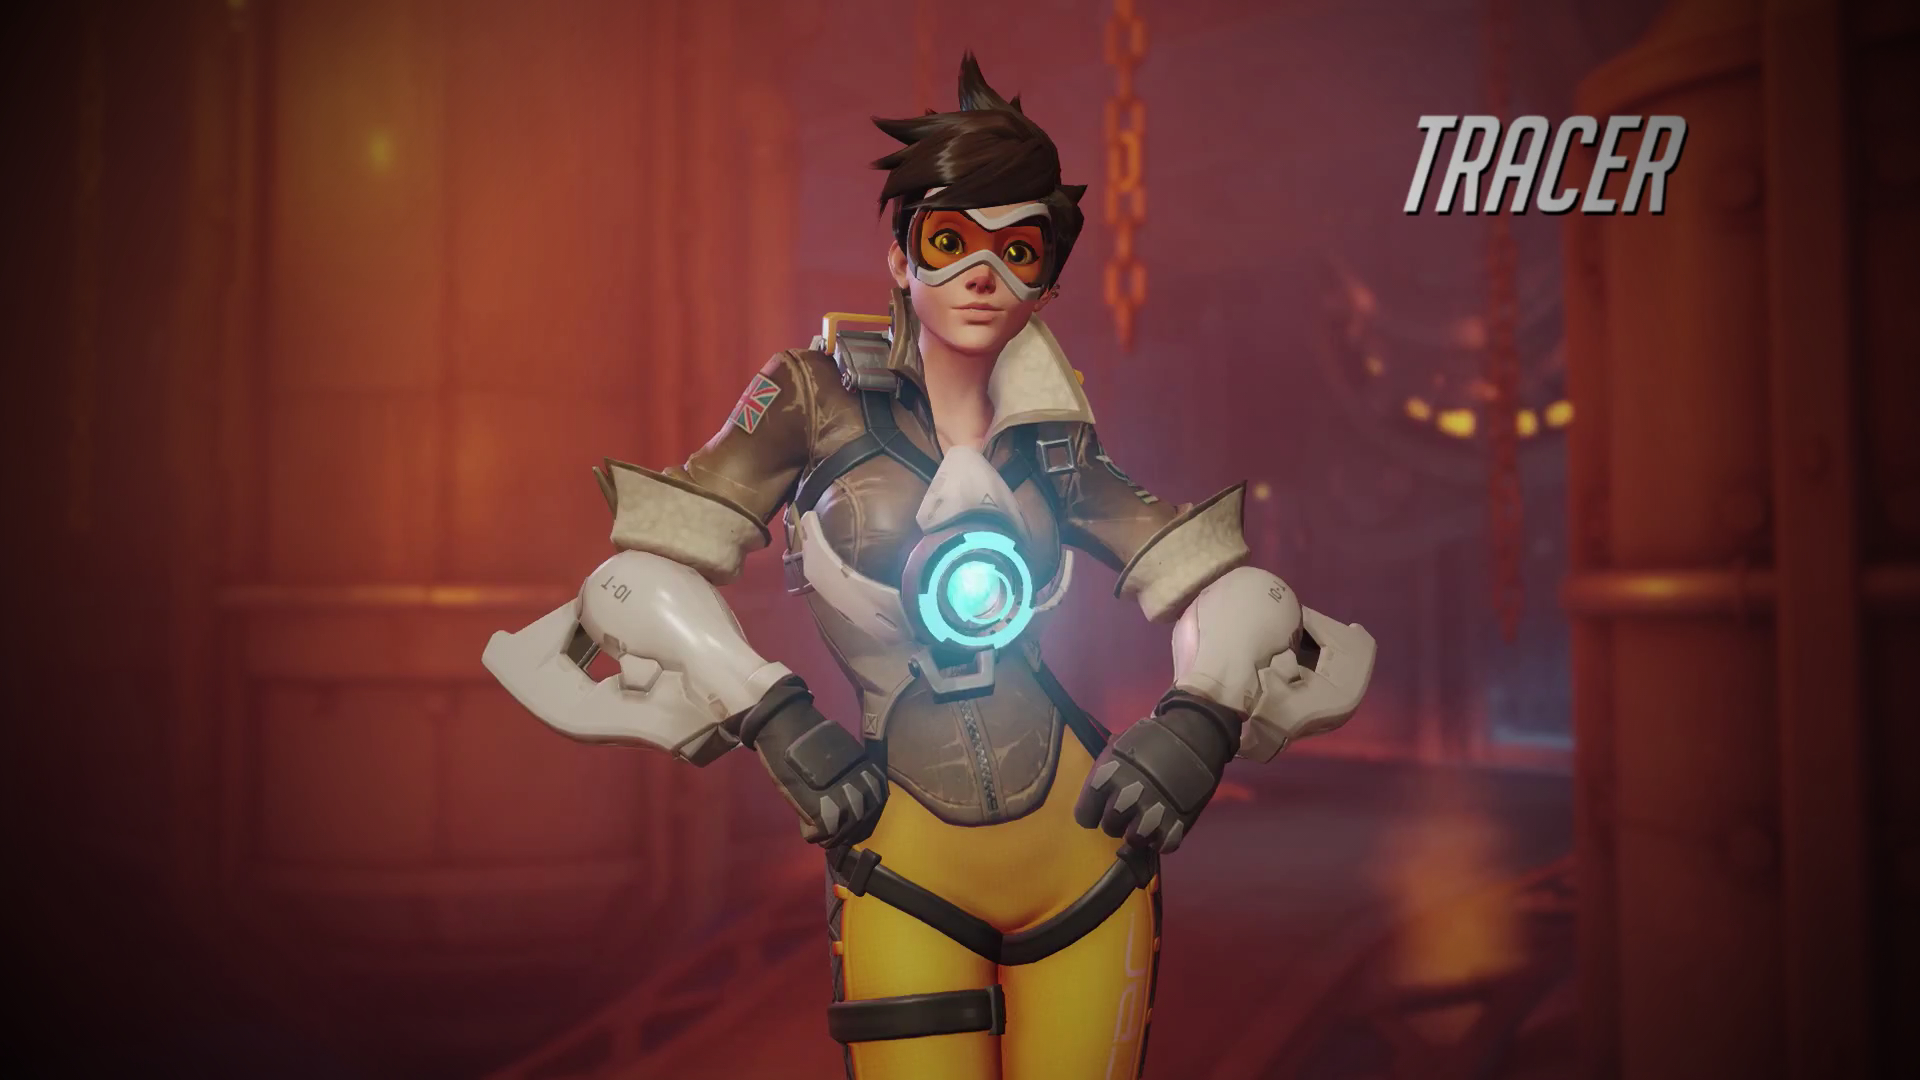 overwatch agent tracer wallpapers - photo #13